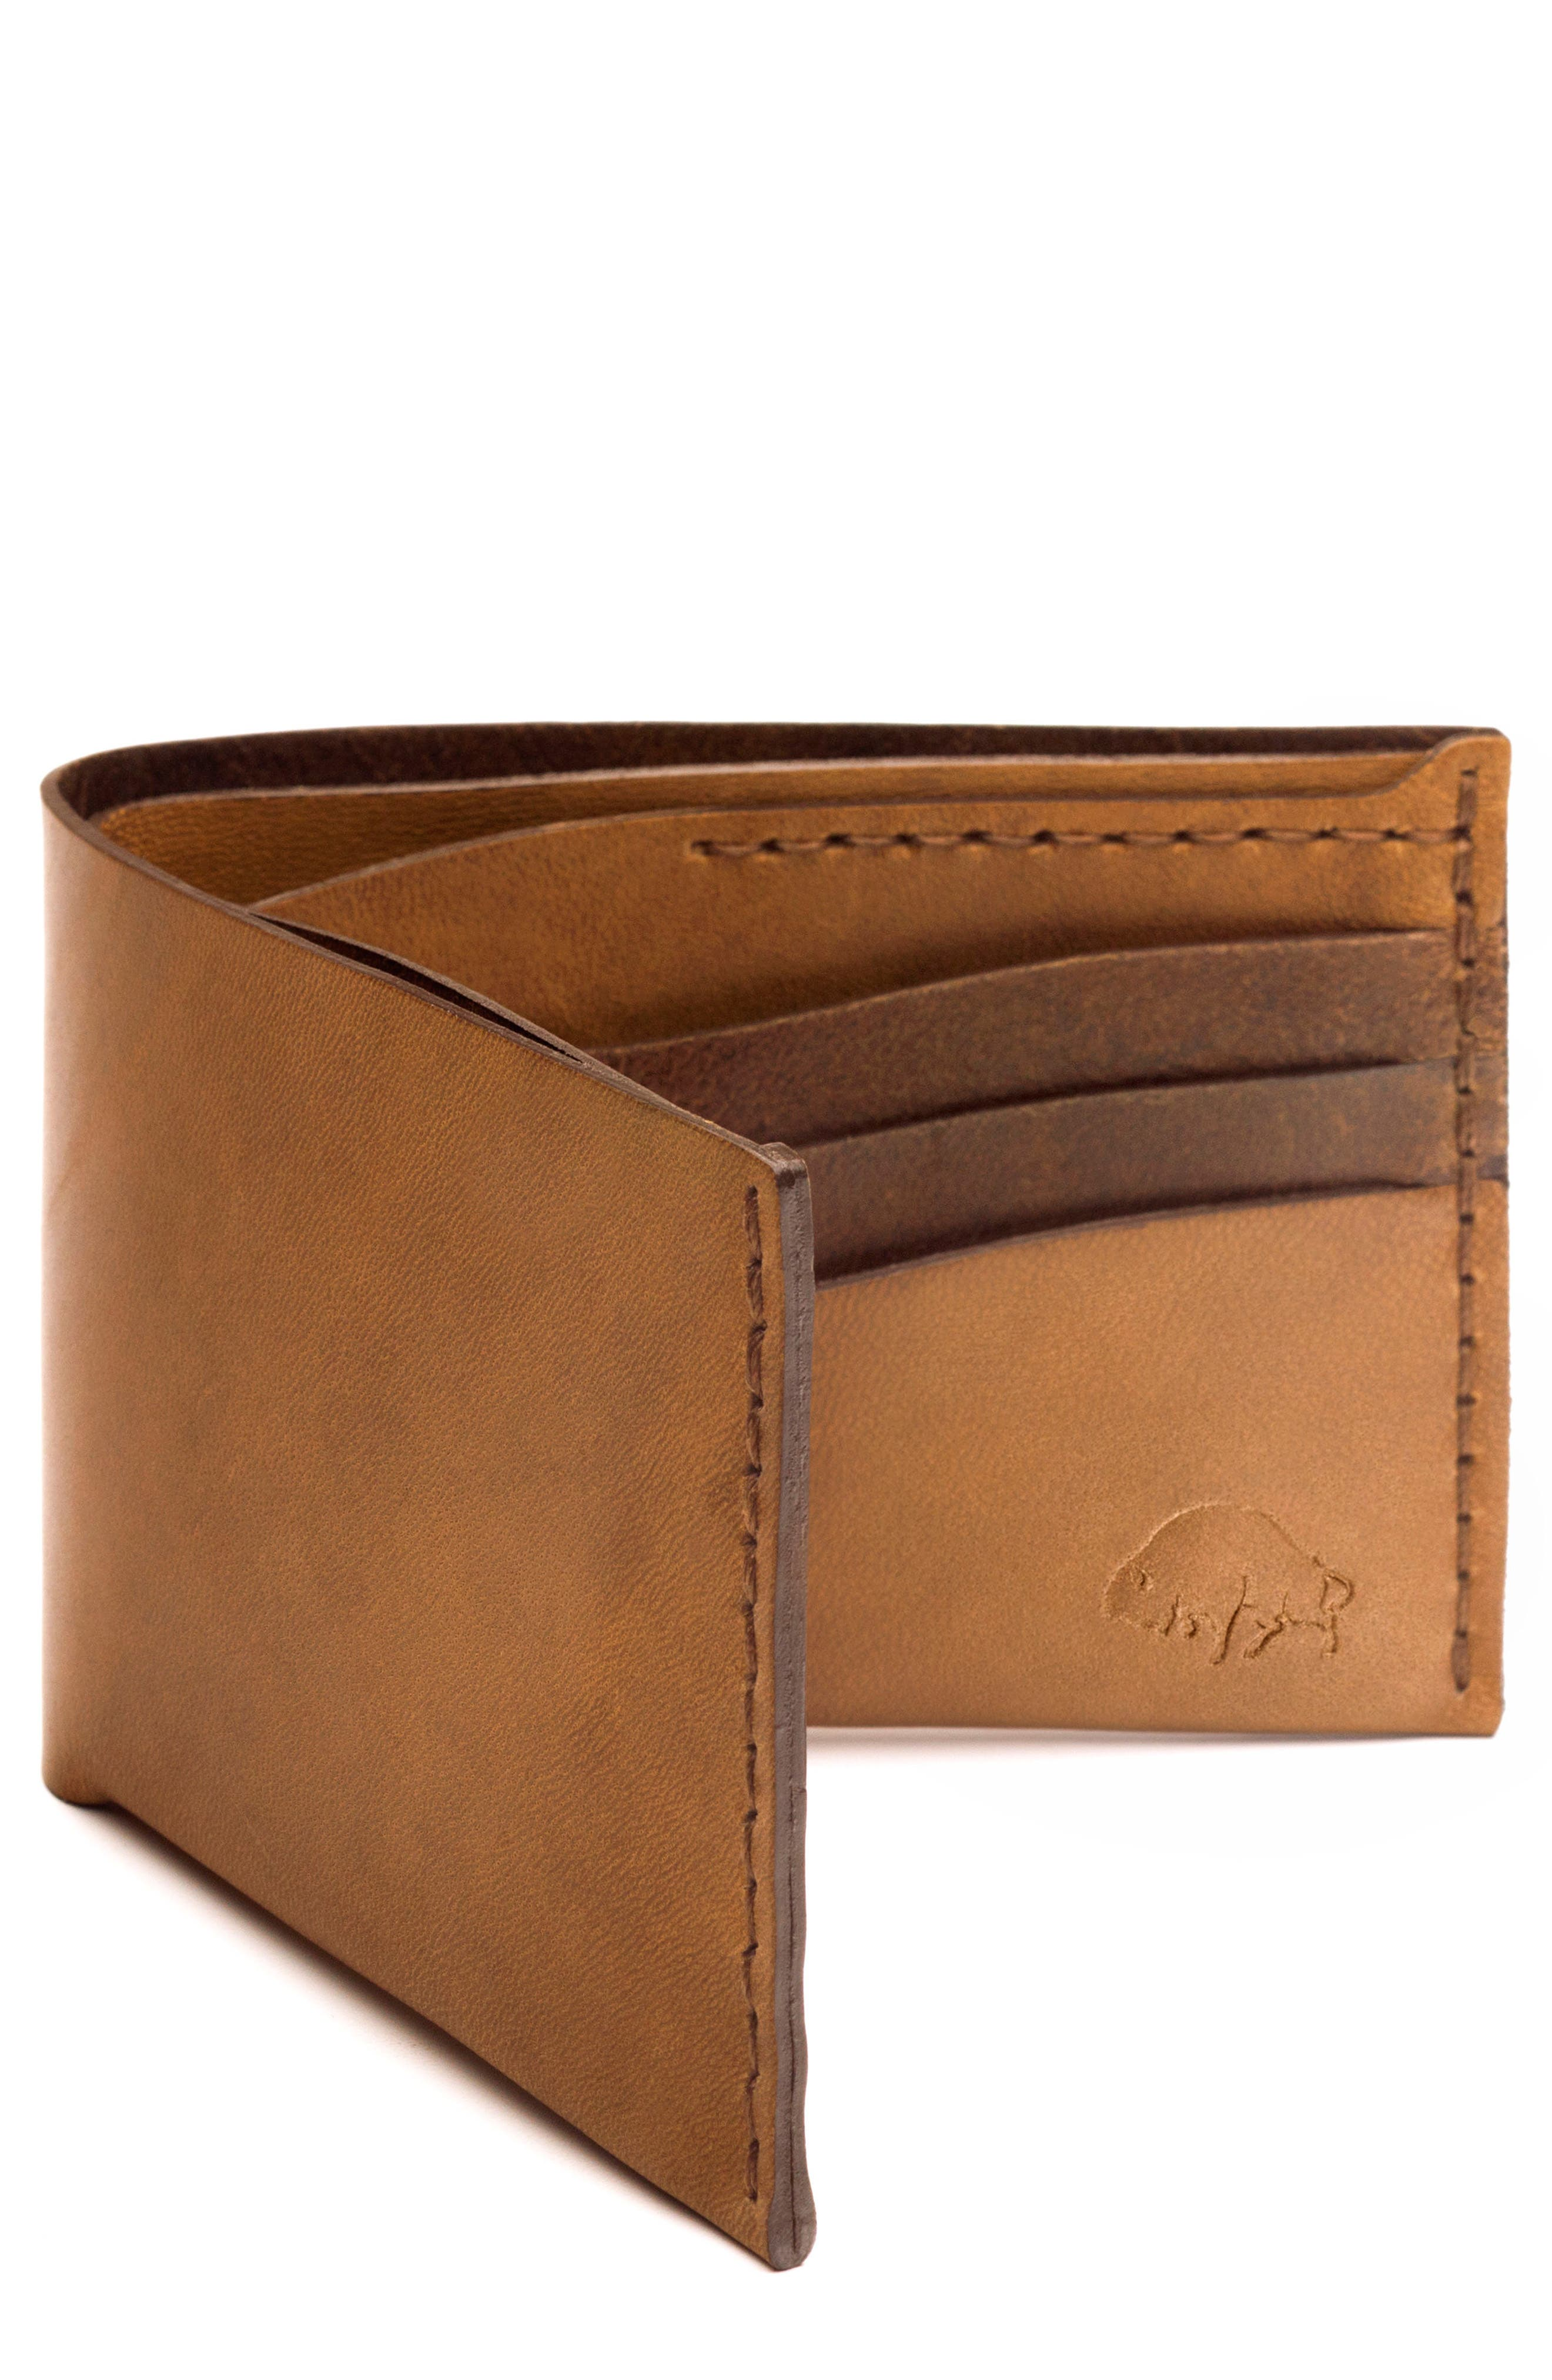 No. 8 Leather Wallet,                             Main thumbnail 1, color,                             WHISKEY